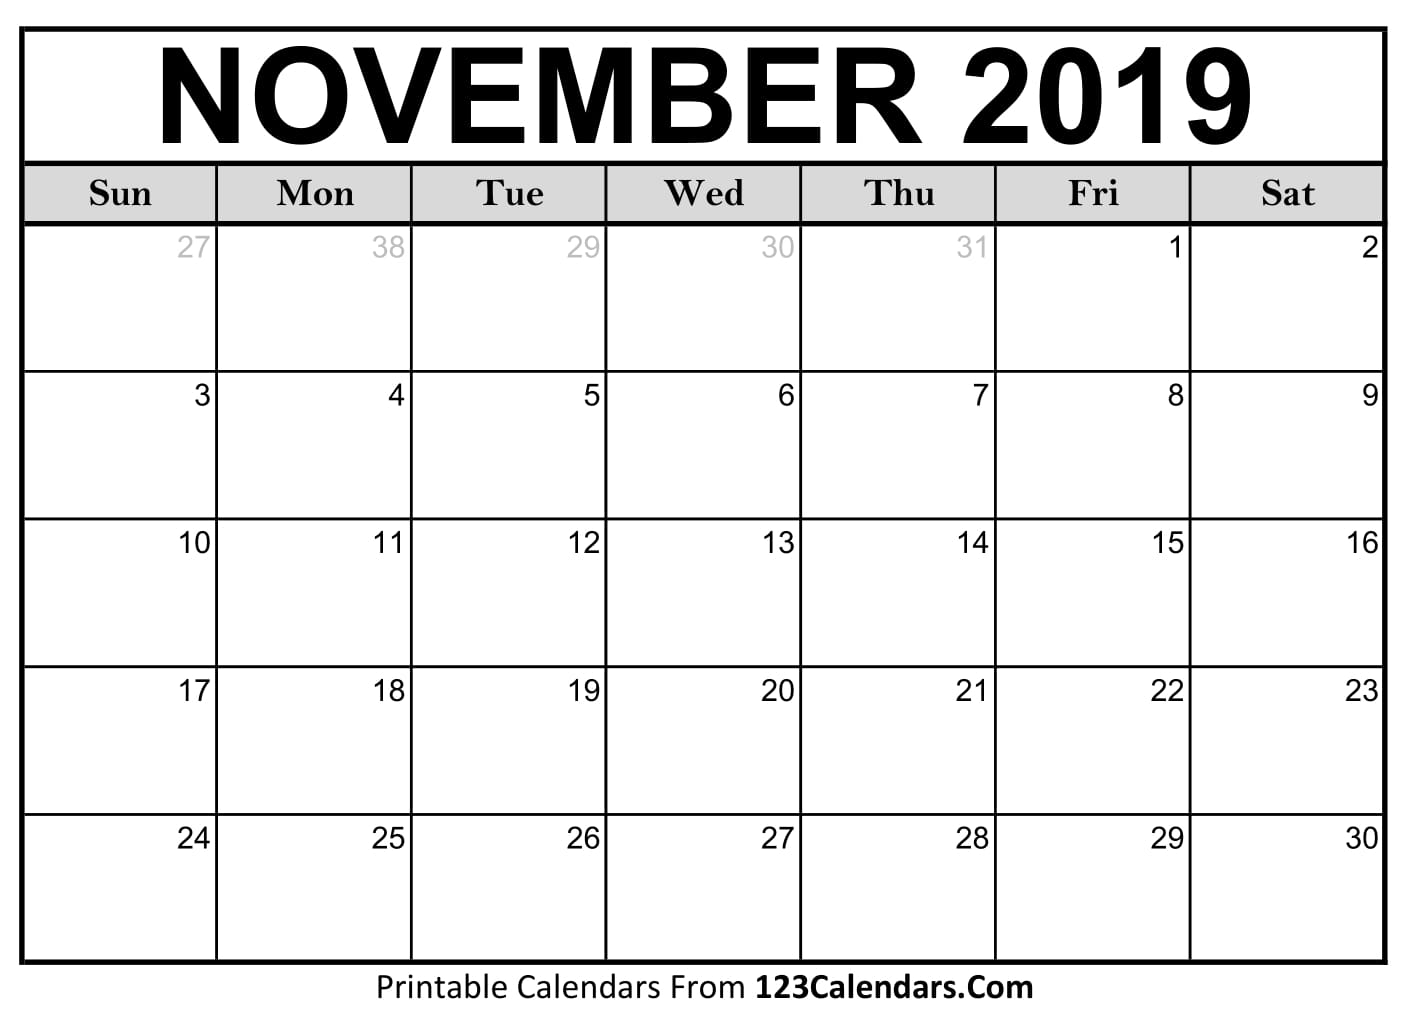 Holidays November 2018 Calendar Printable USA Free Blank November 2018 Printable Calendar